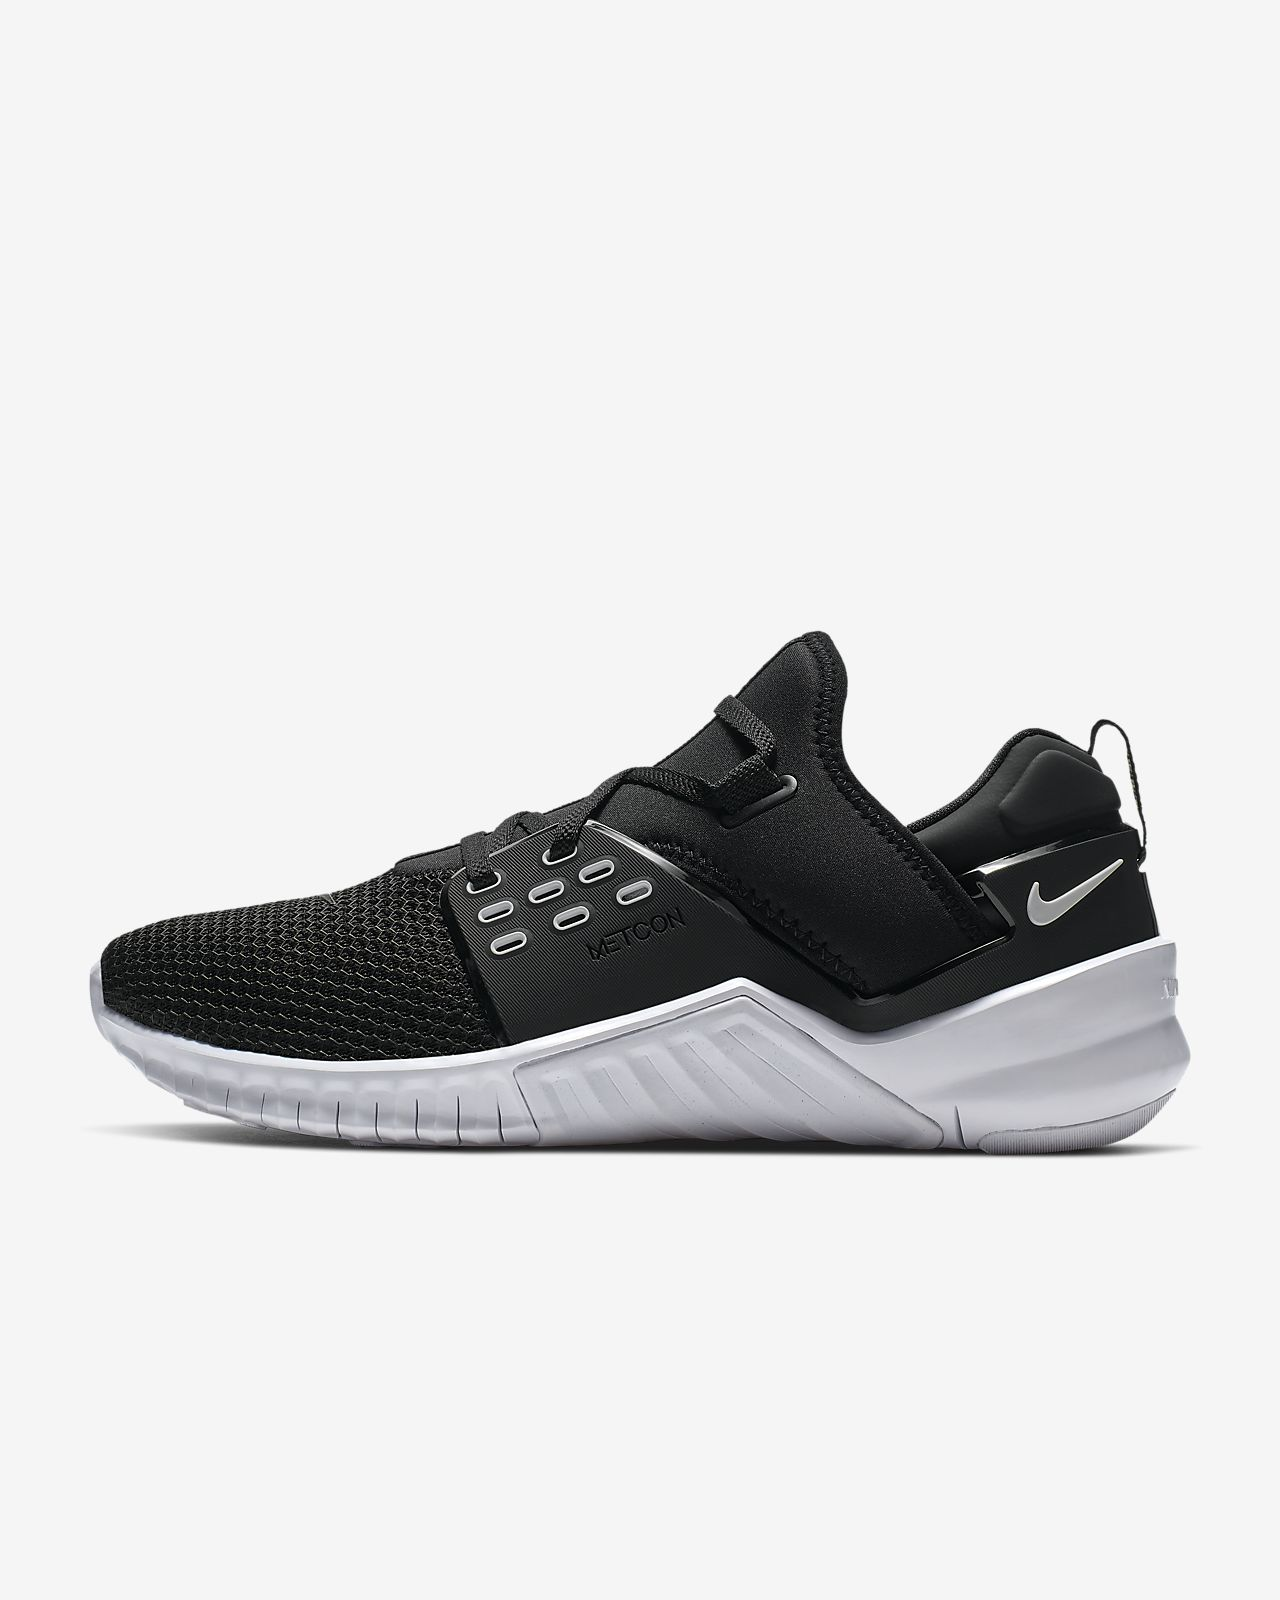 Chaussure de training Nike Free X Metcon 2 pour Homme